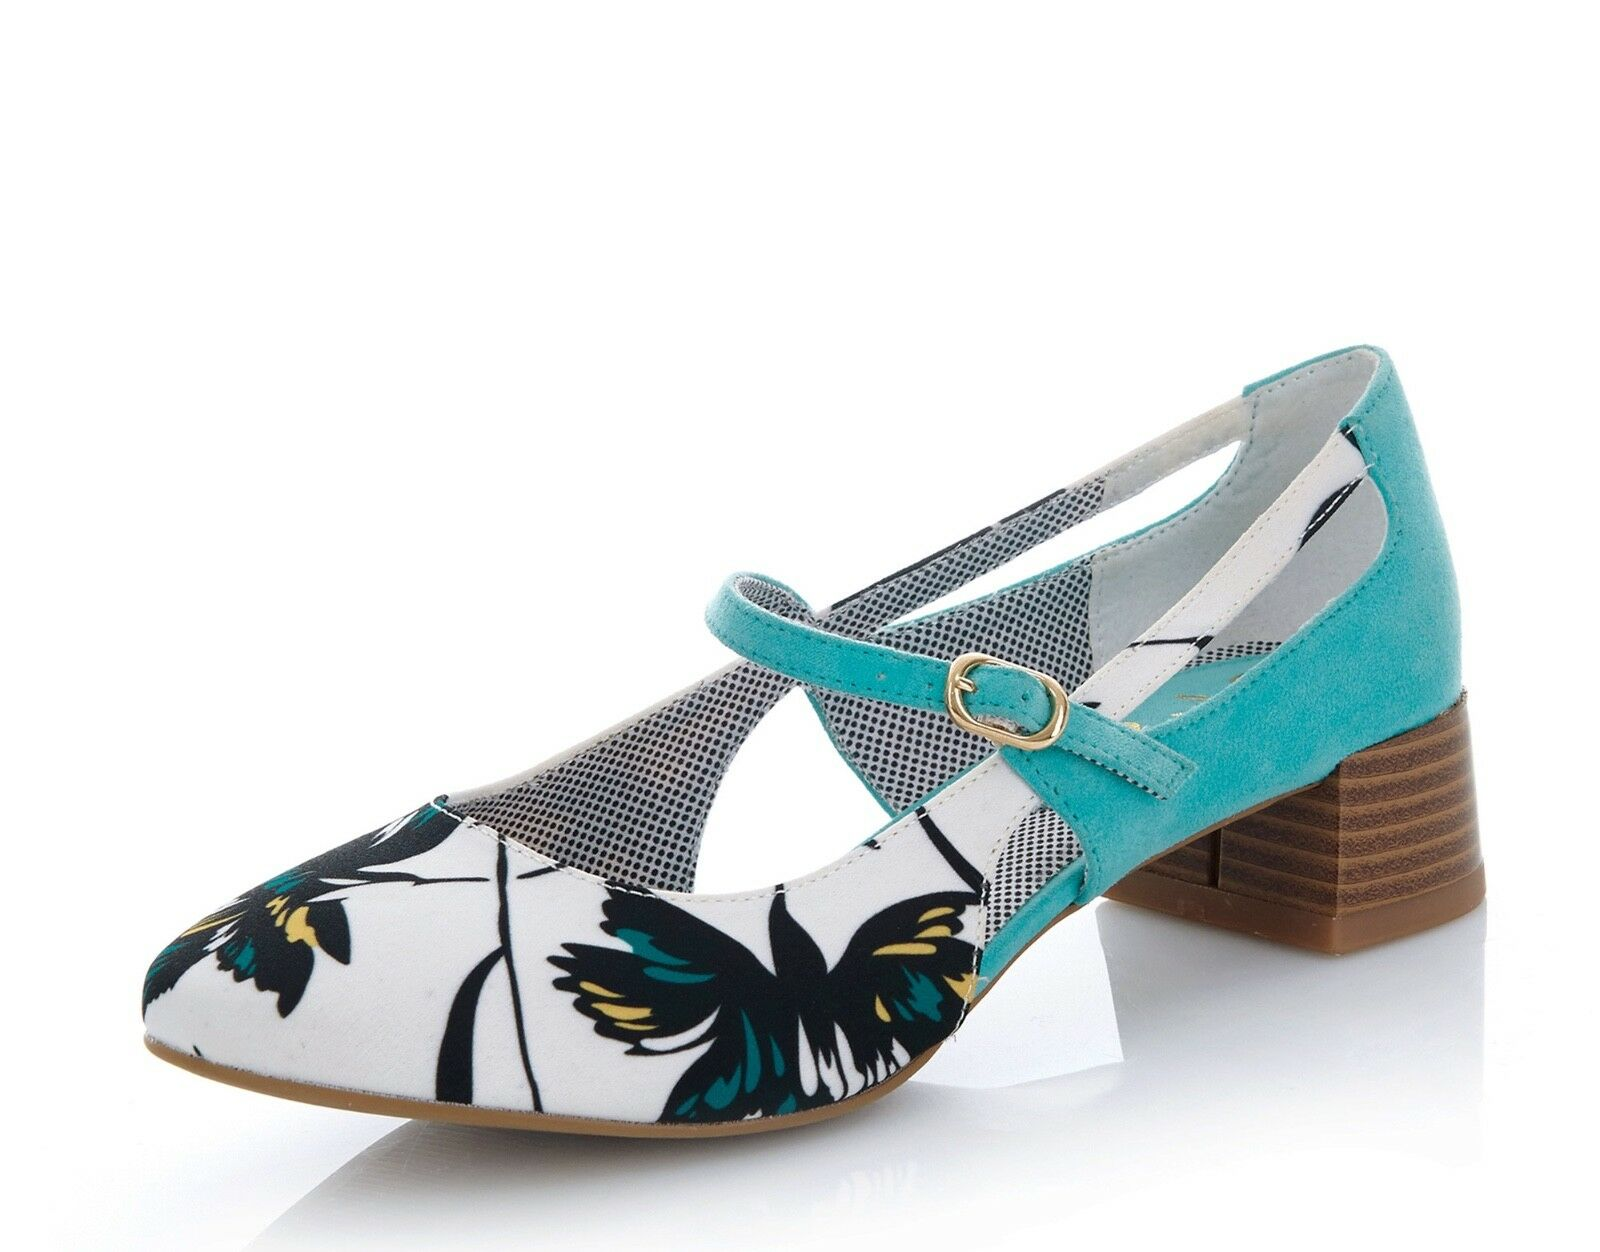 Ruby Shoo NEW Iris aqua white turquoise floral floral floral print low heel shoes size 3-9 cc0607